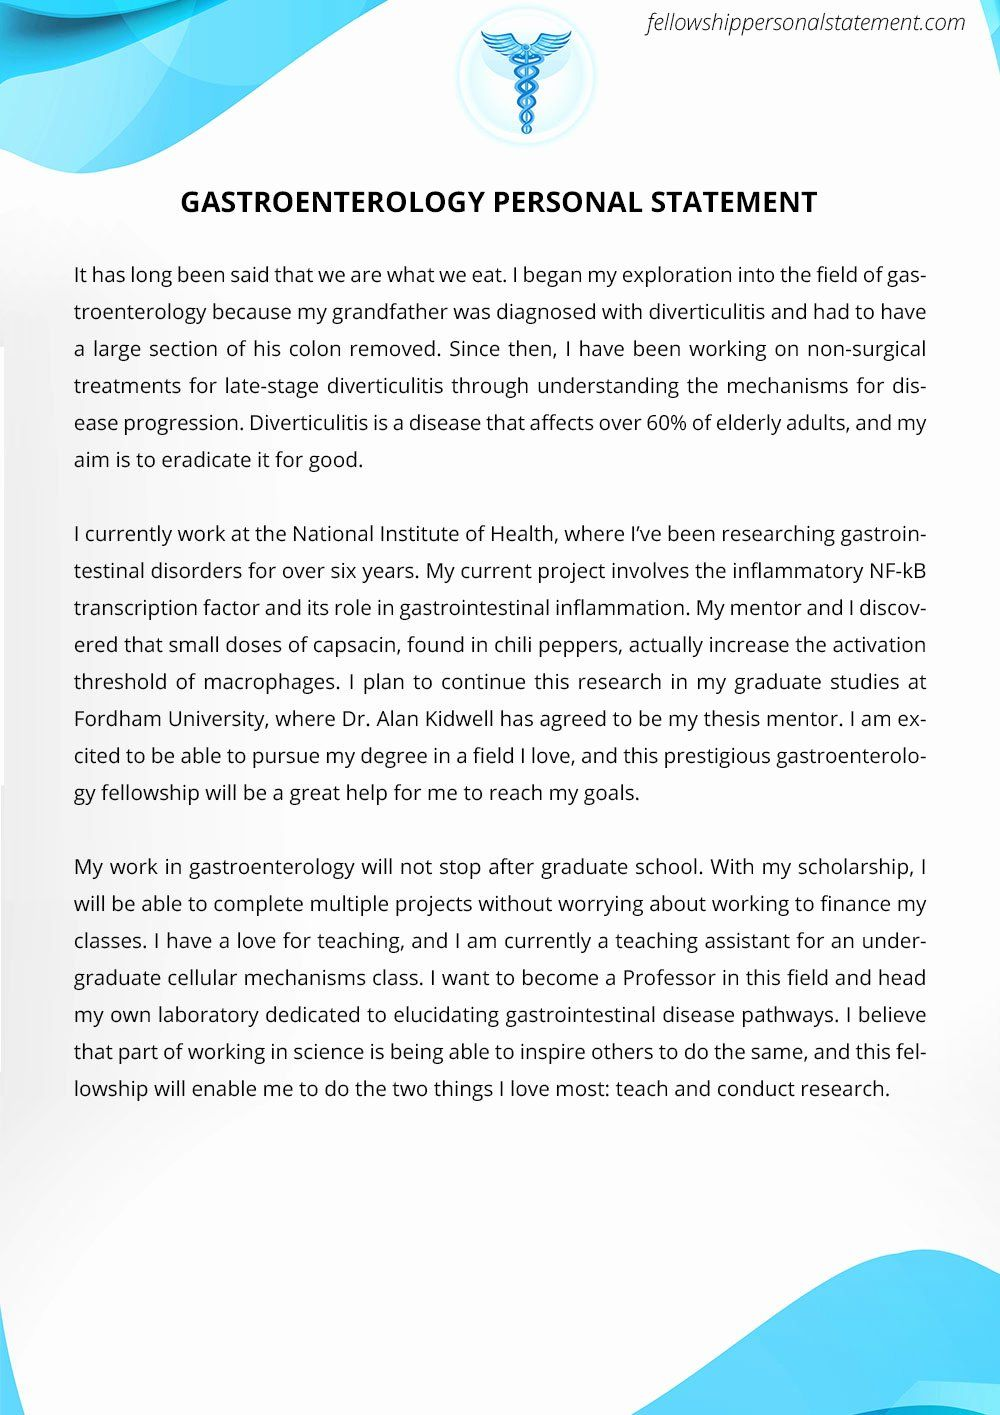 Personal Statement For Fellowship Luxury Powerful And Unique Cv Writing Service Argumentative Essay Topics Gi Sample